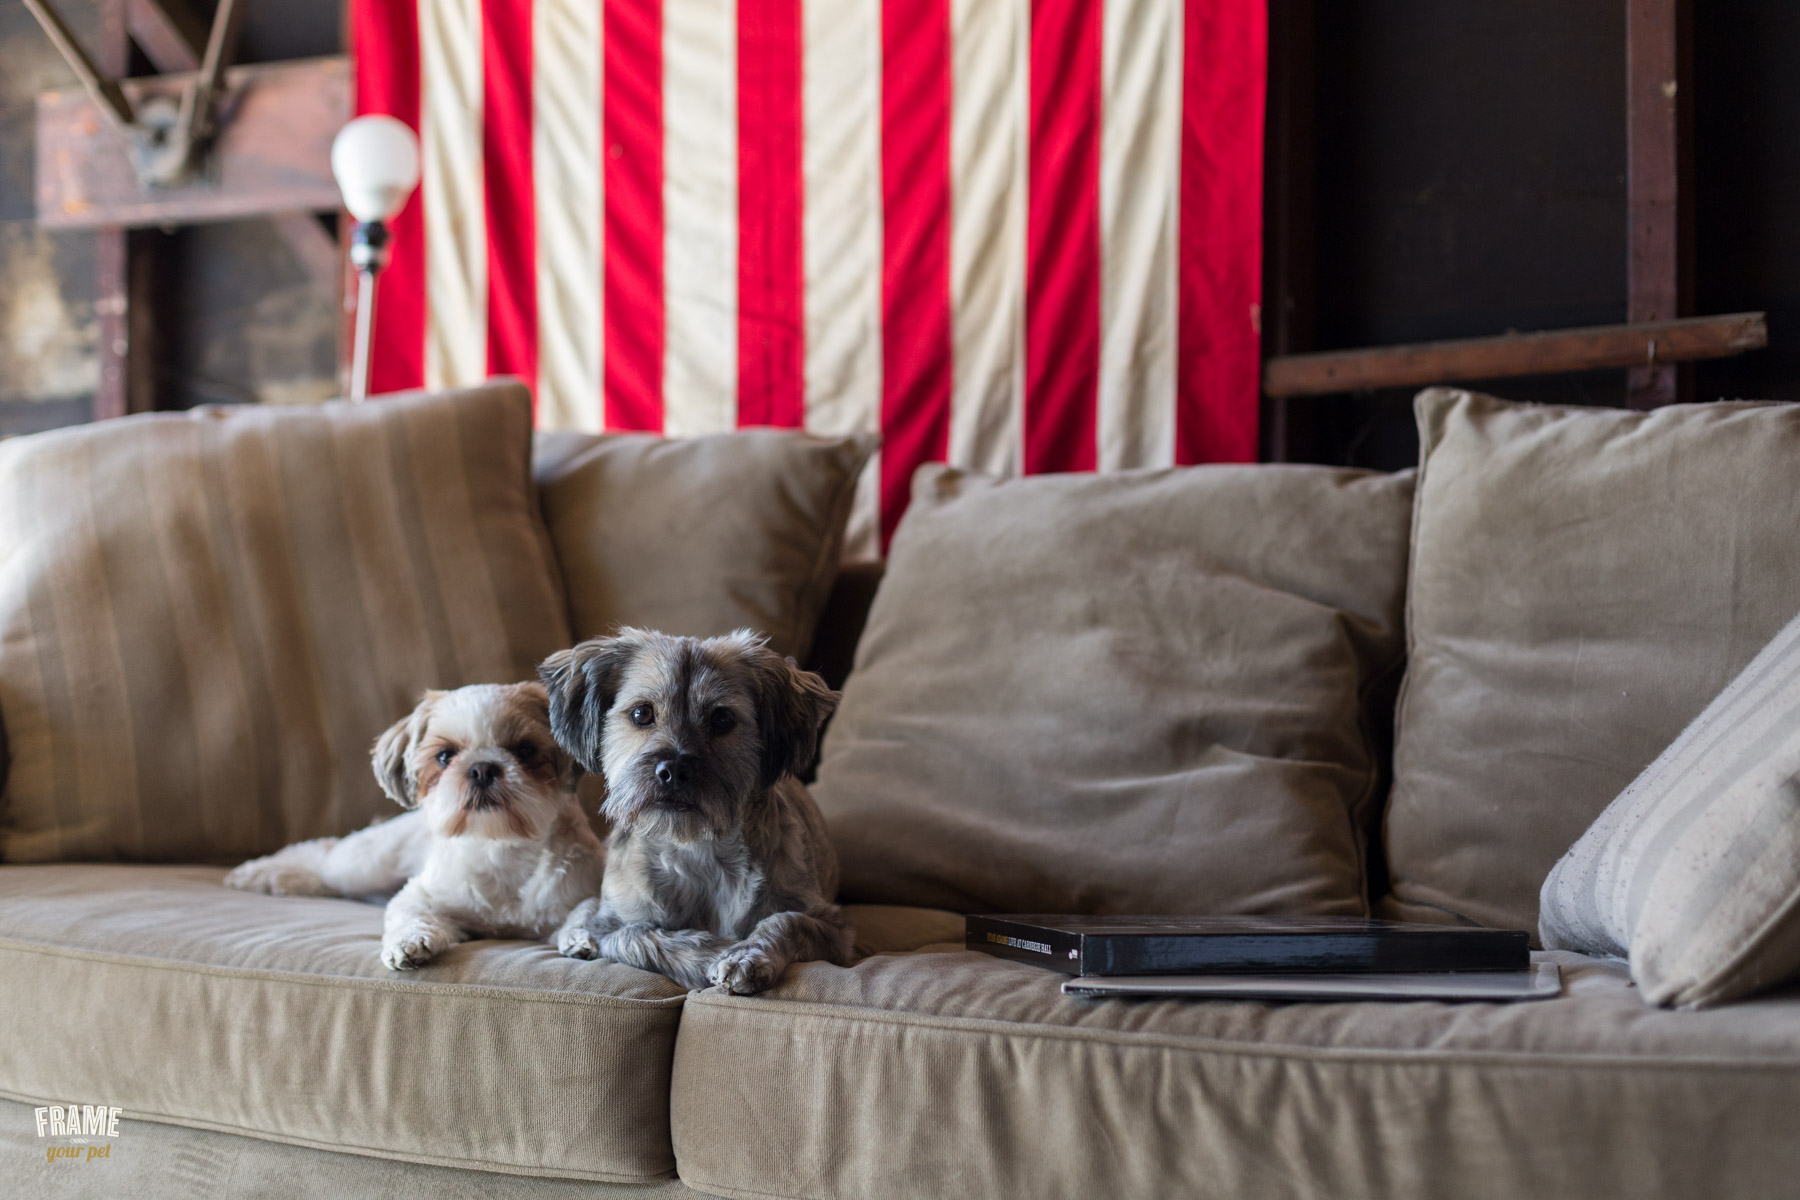 portraits-of-dogs-on-couch-los-angeles-dog-photographer.jpg